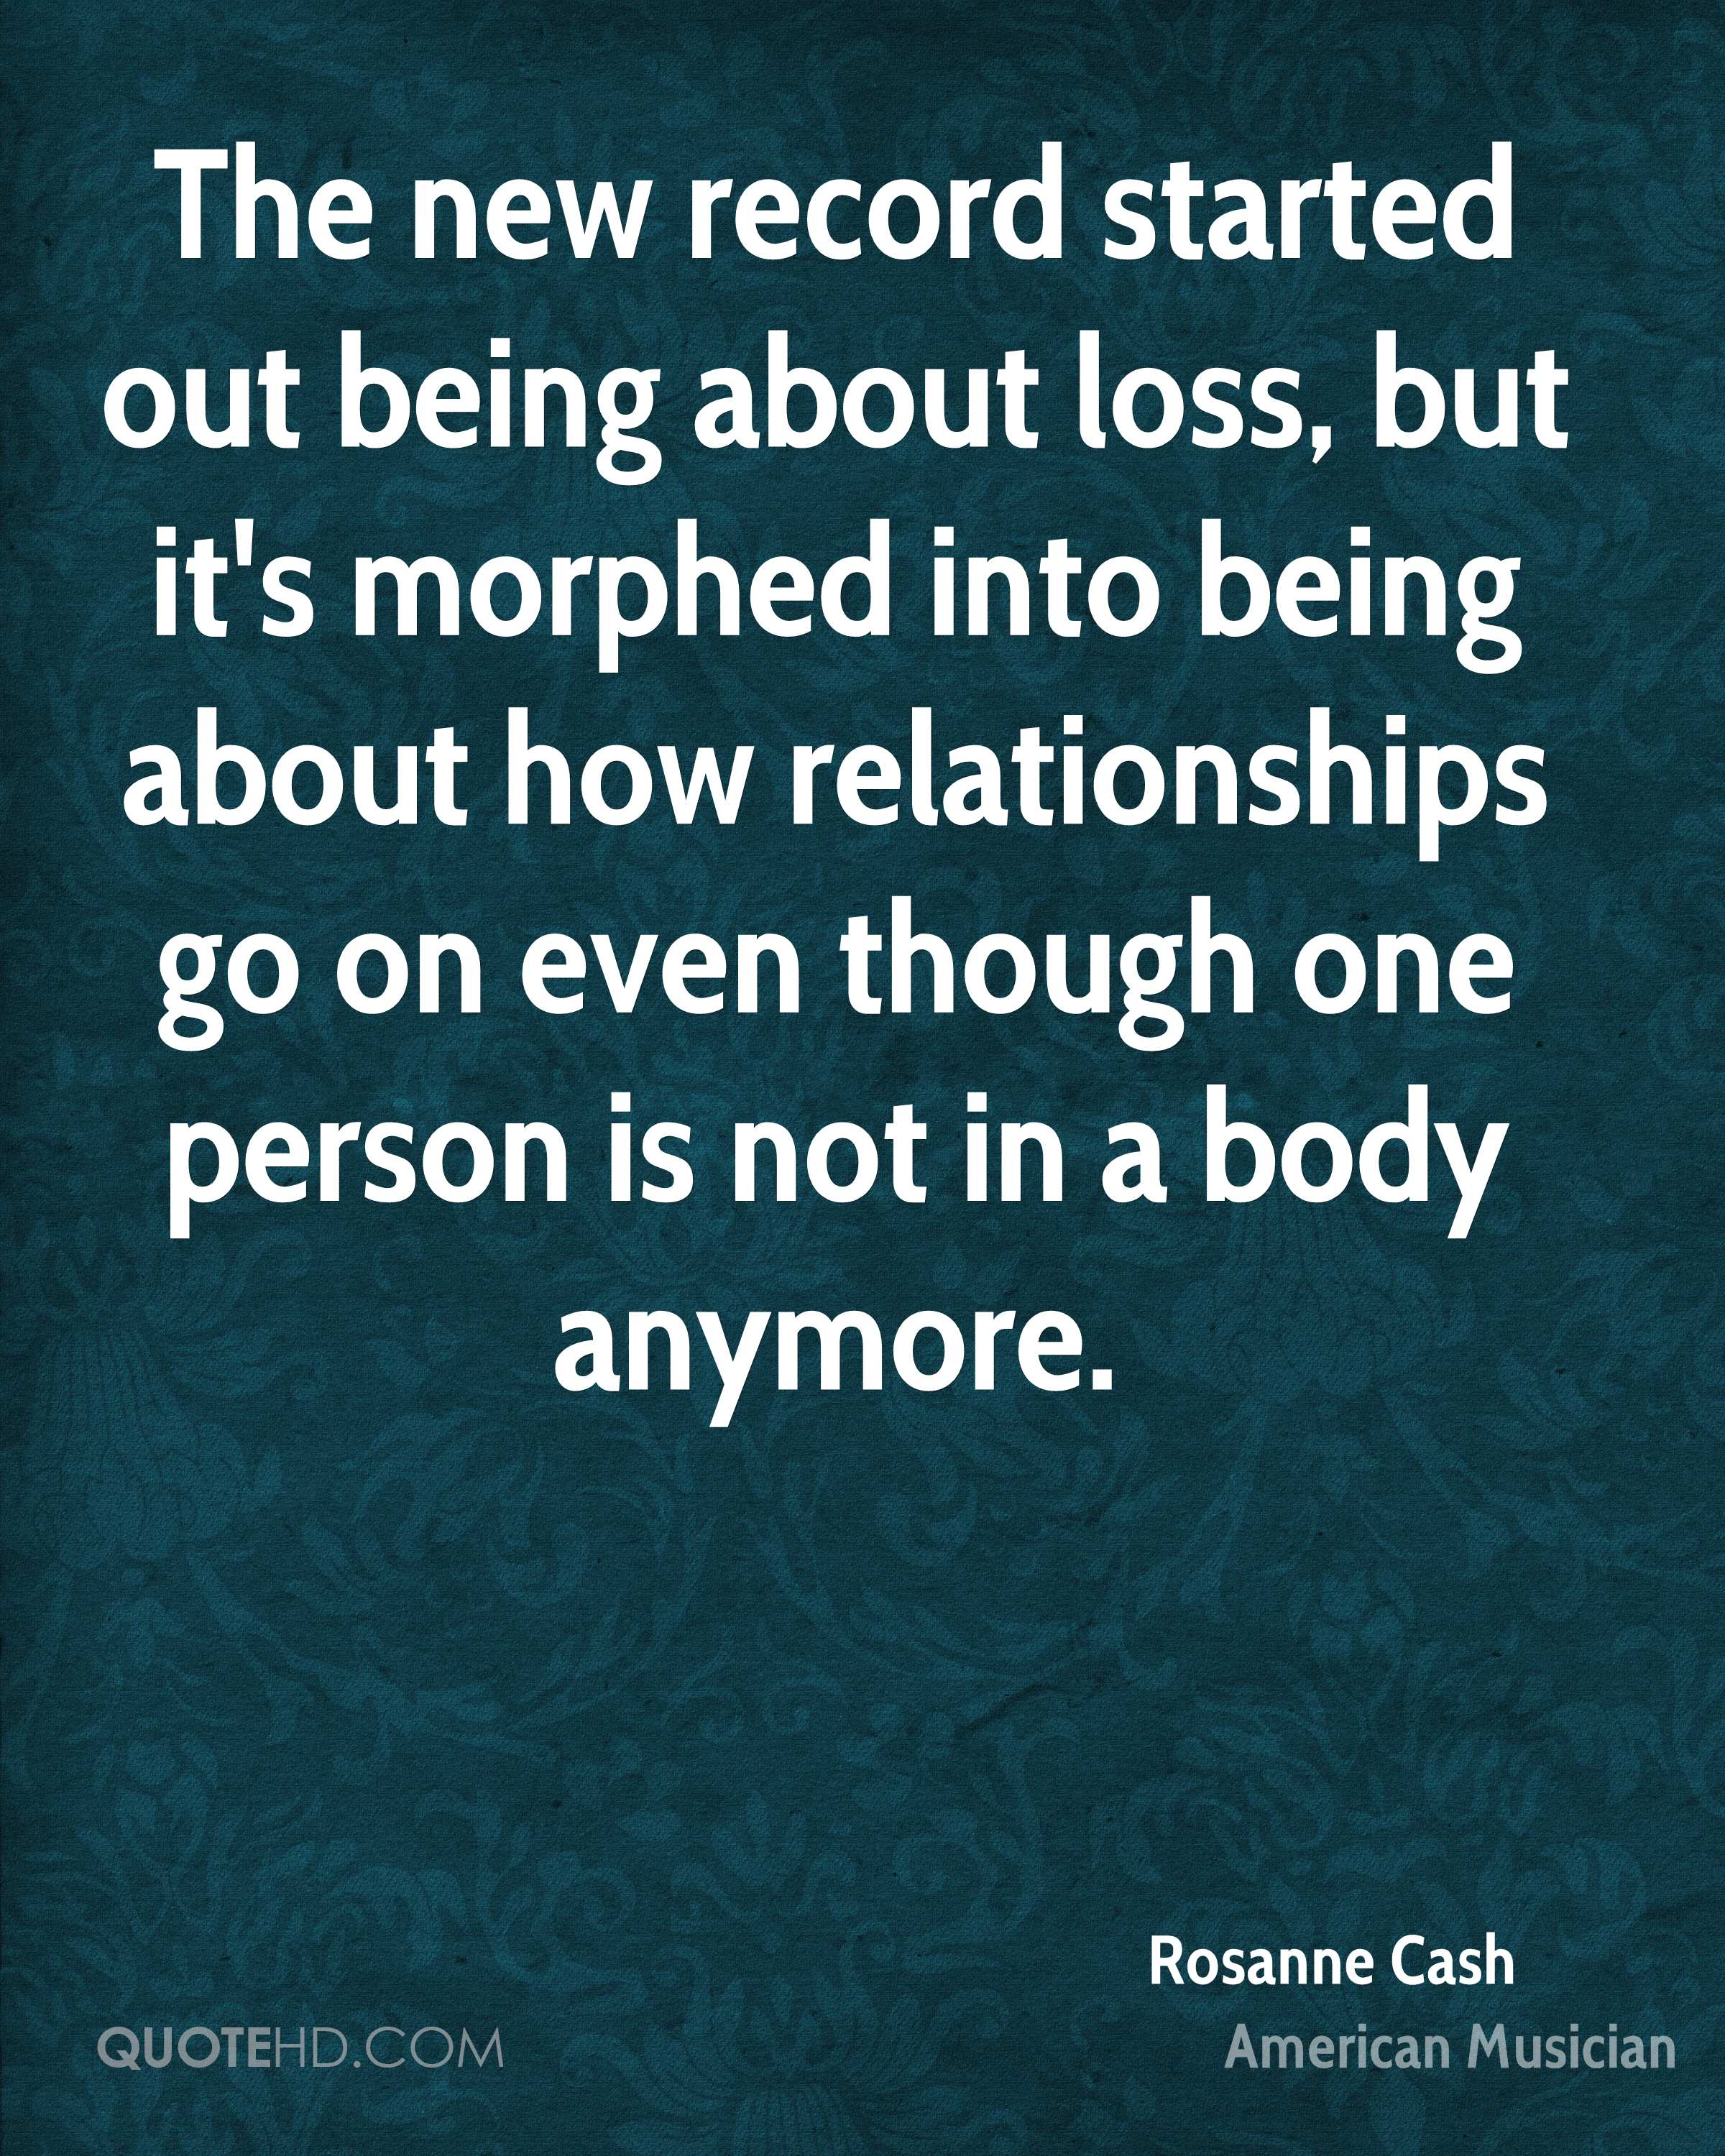 The new record started out being about loss, but it's morphed into being about how relationships go on even though one person is not in a body anymore.